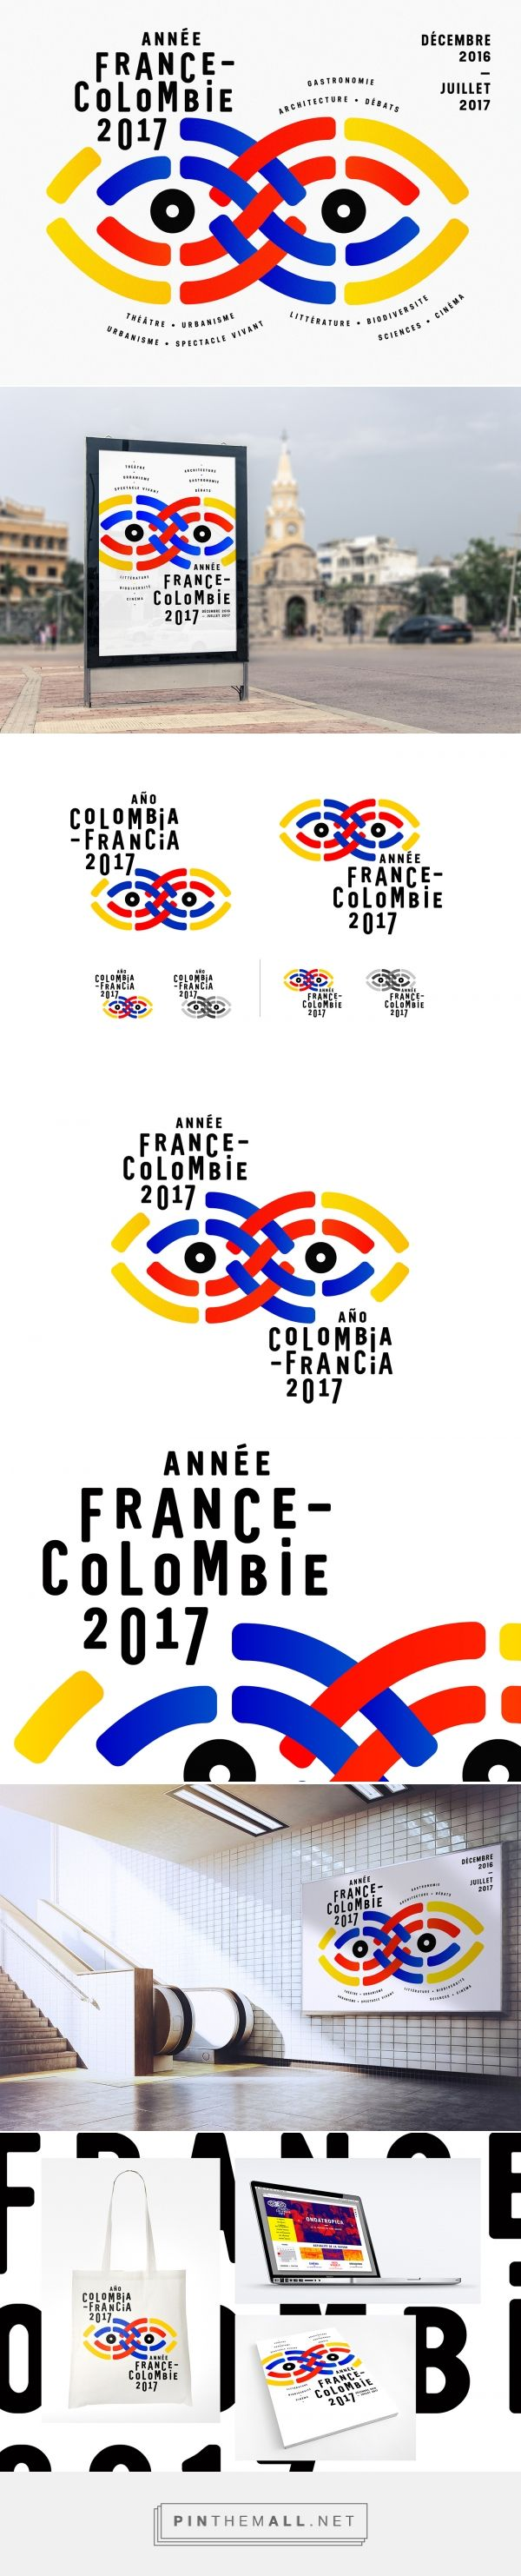 Institut français - Année France Colombie on Behance - created via https://pinthemall.net